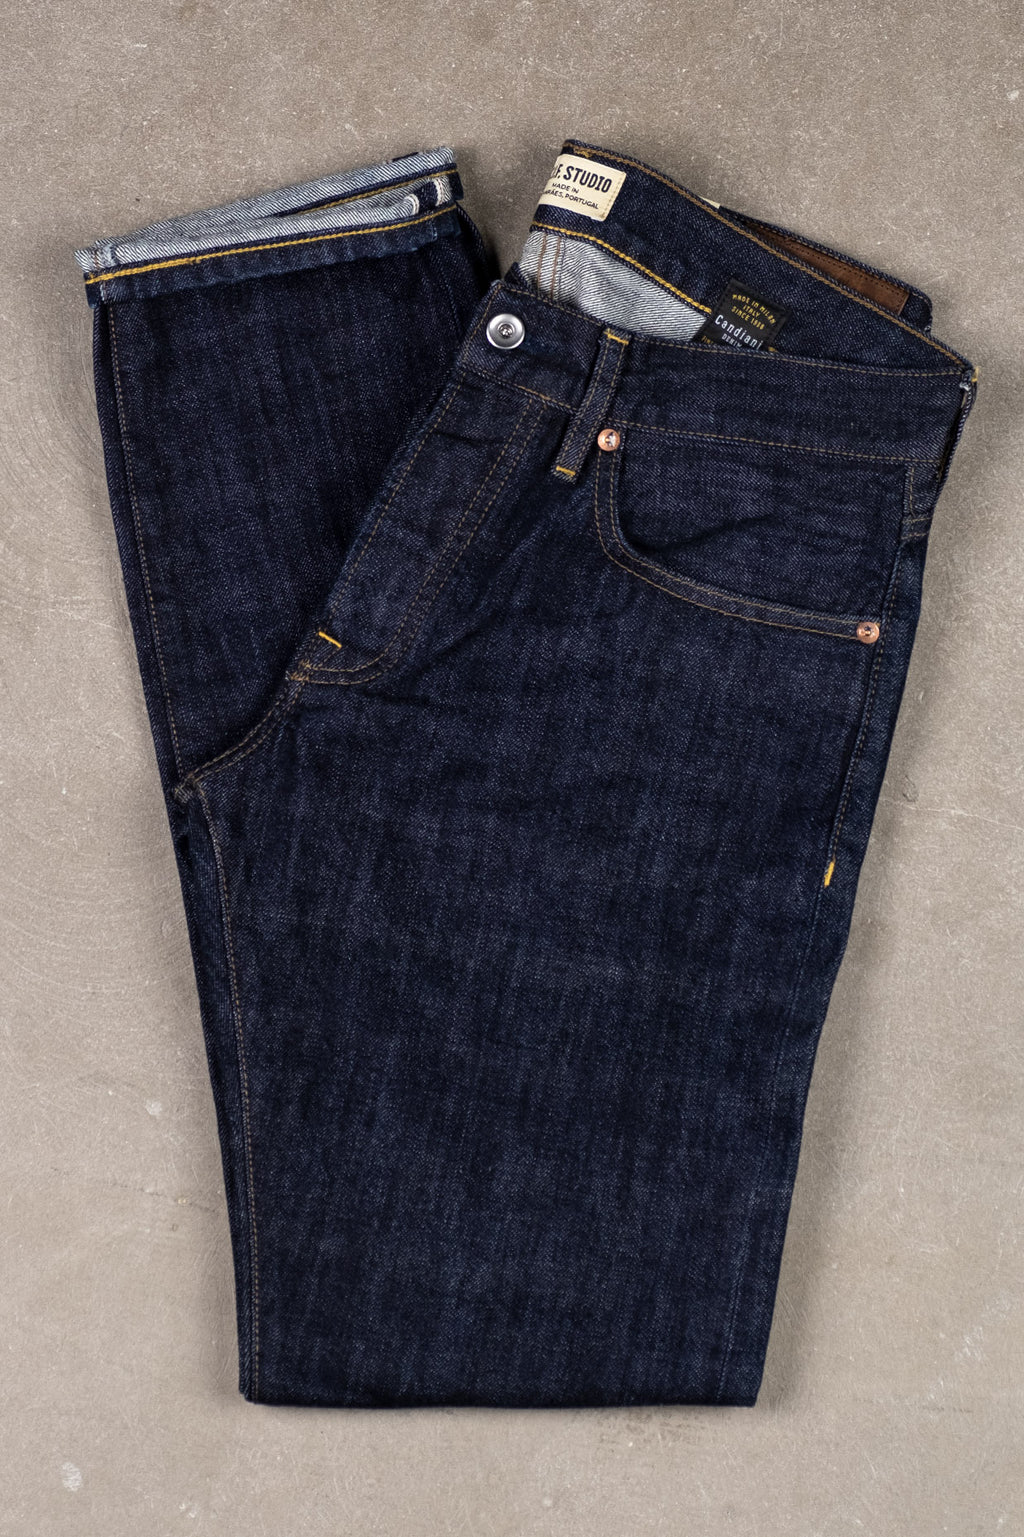 M3 13oz Indigo Selvedge - Rinsed